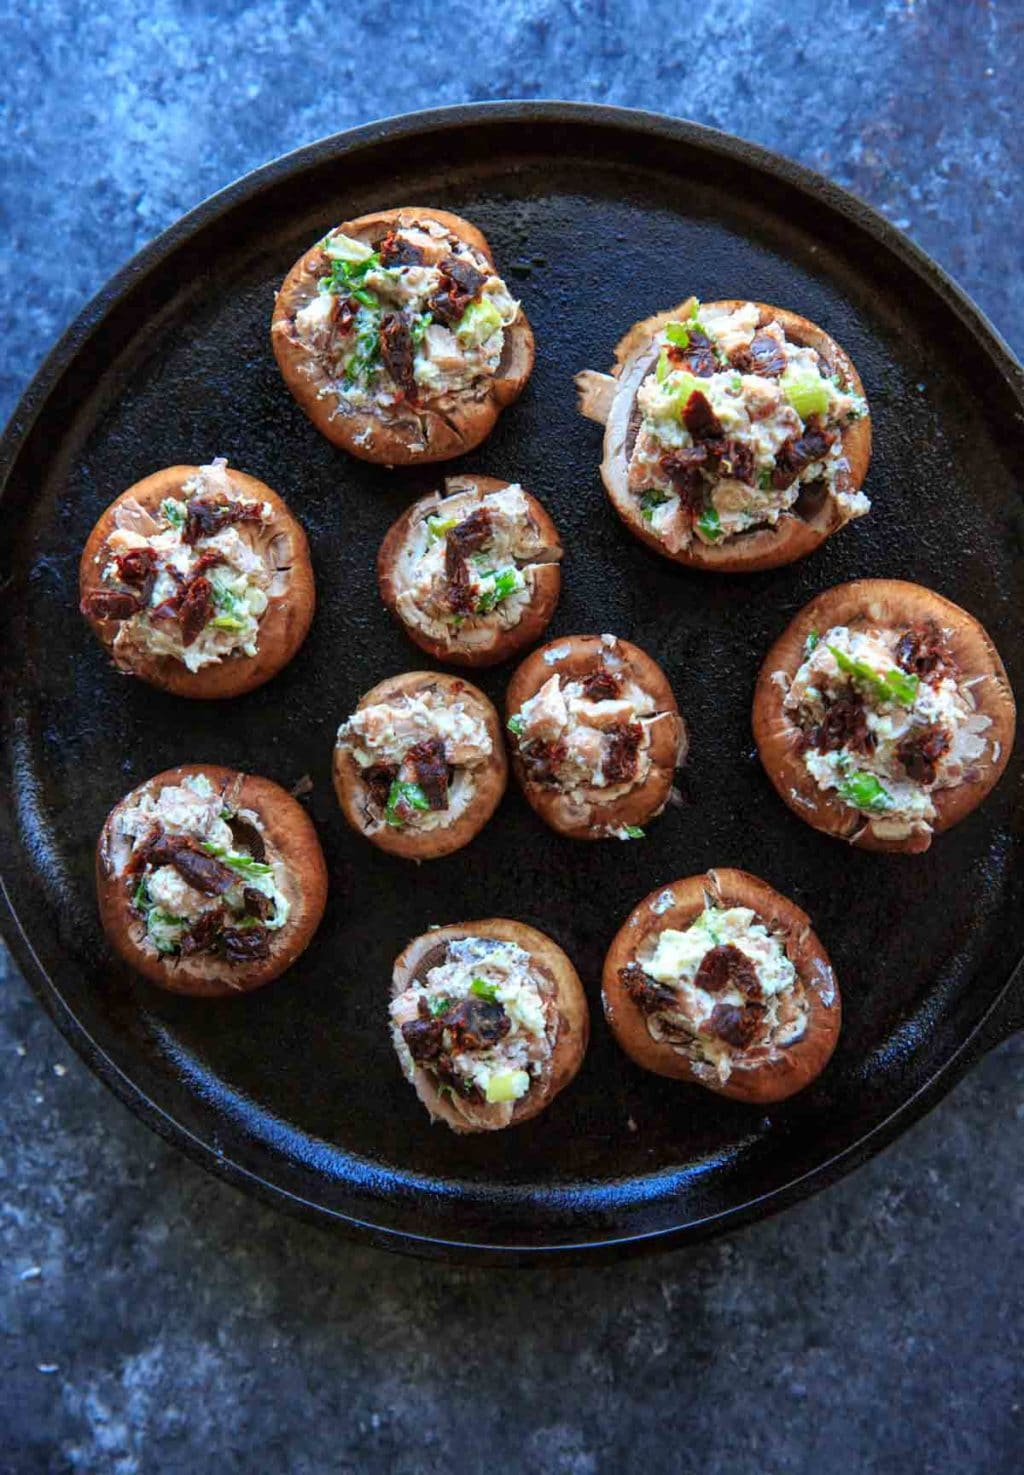 Chevre Stuffed Mushrooms with Sun-dried Tomatoes - stuffed mushrooms before baking